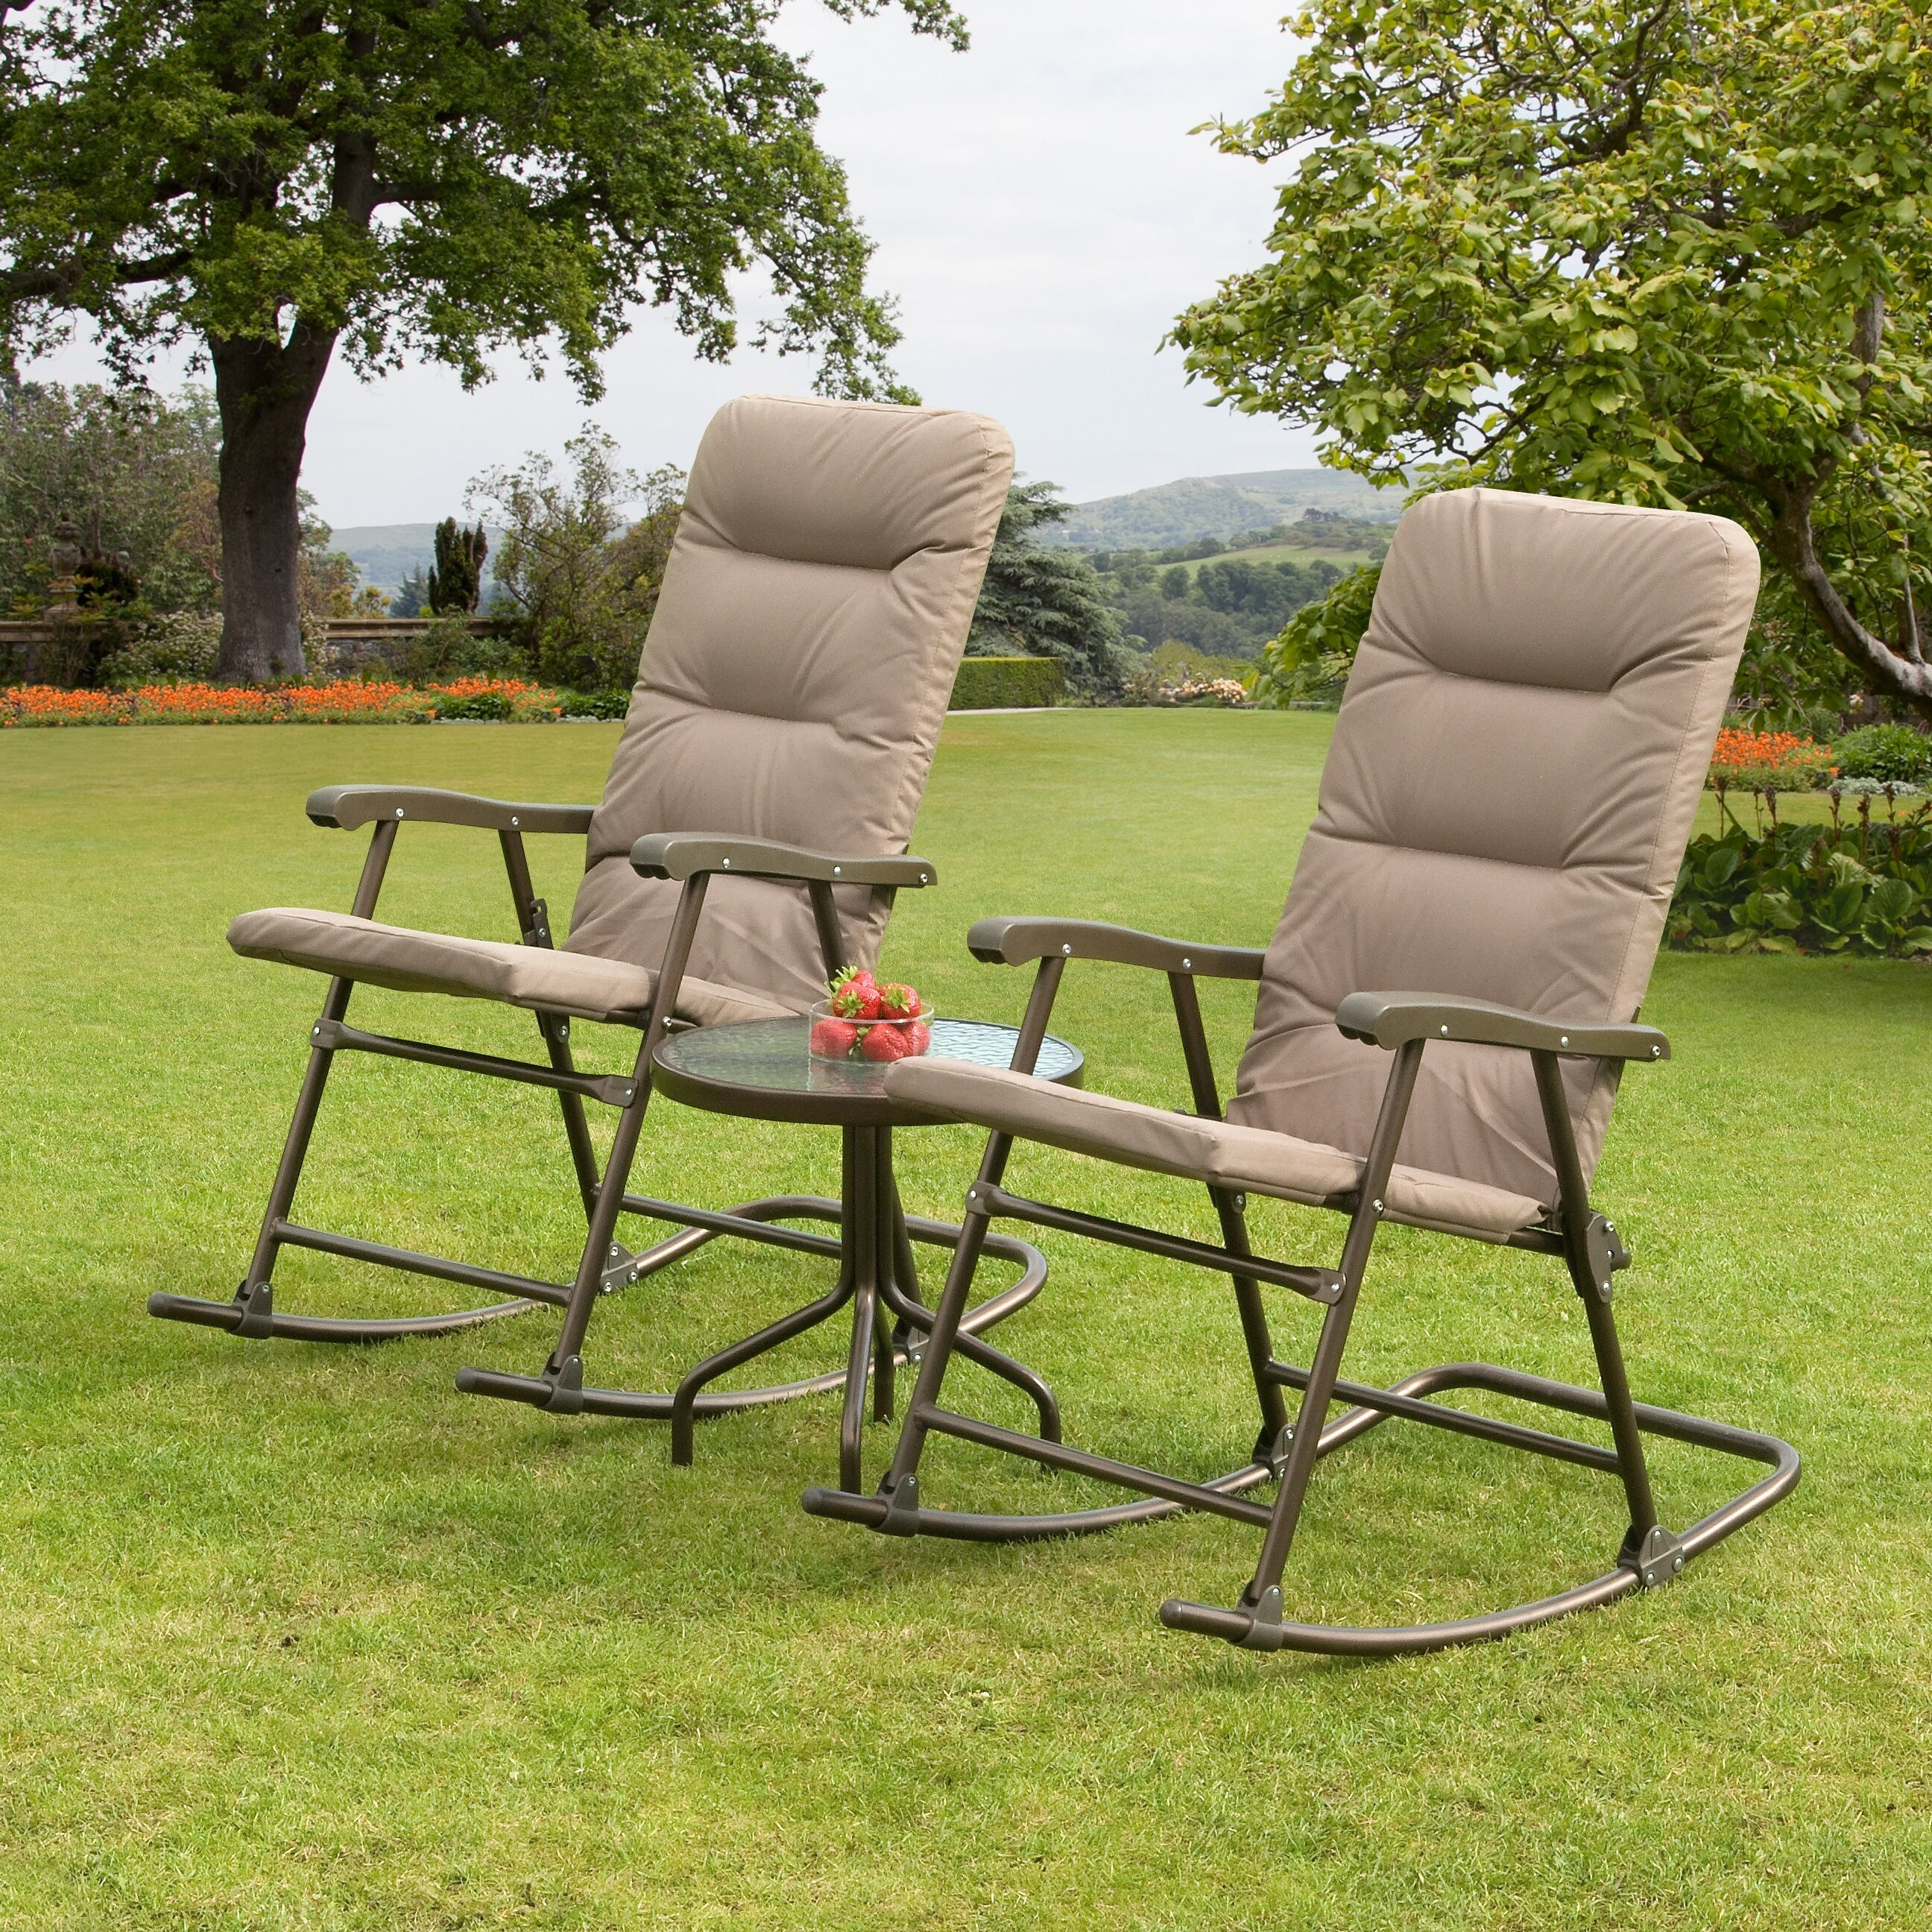 SunTime Outdoor Living Hereford 3 Piece Rocker Seating ... on Suntime Outdoor Living id=29049